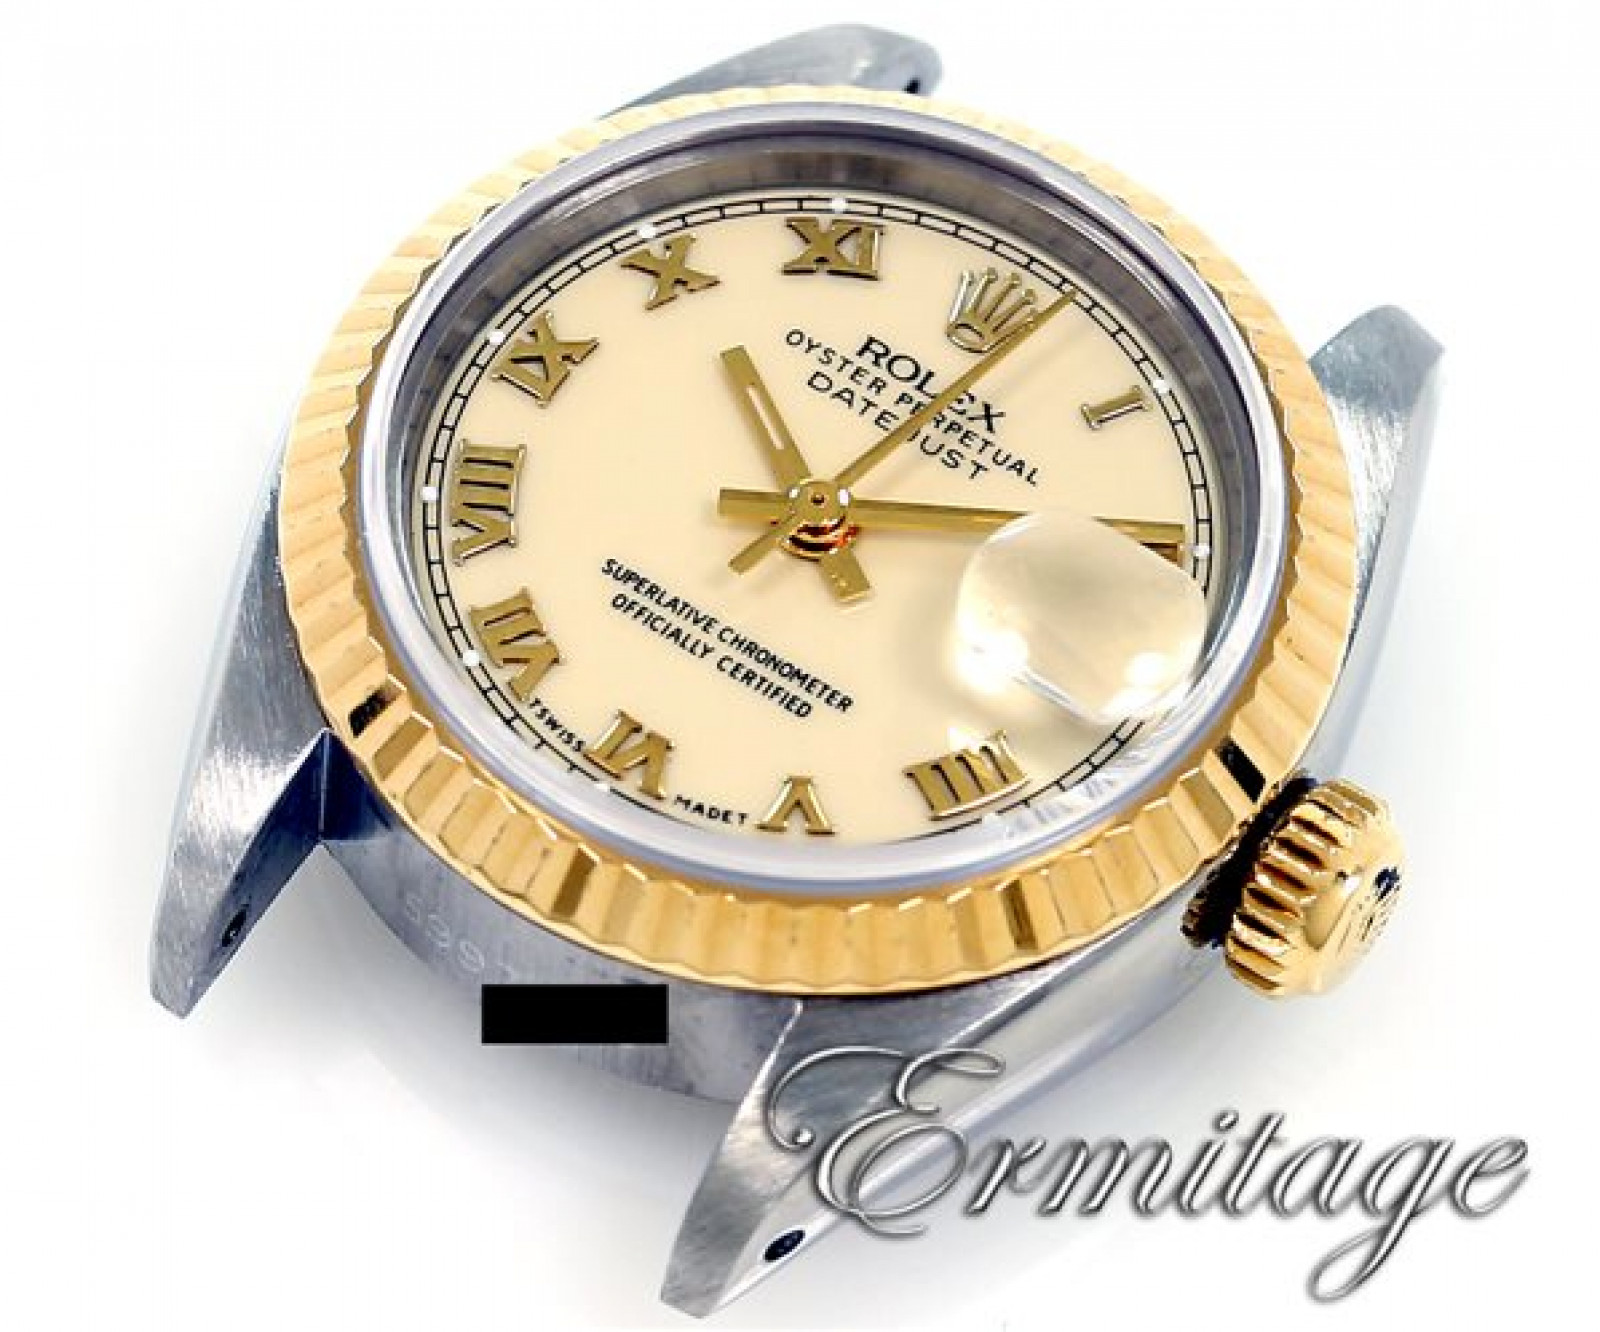 Vintage Rolex Datejust 6917 Gold & Steel Year 1980